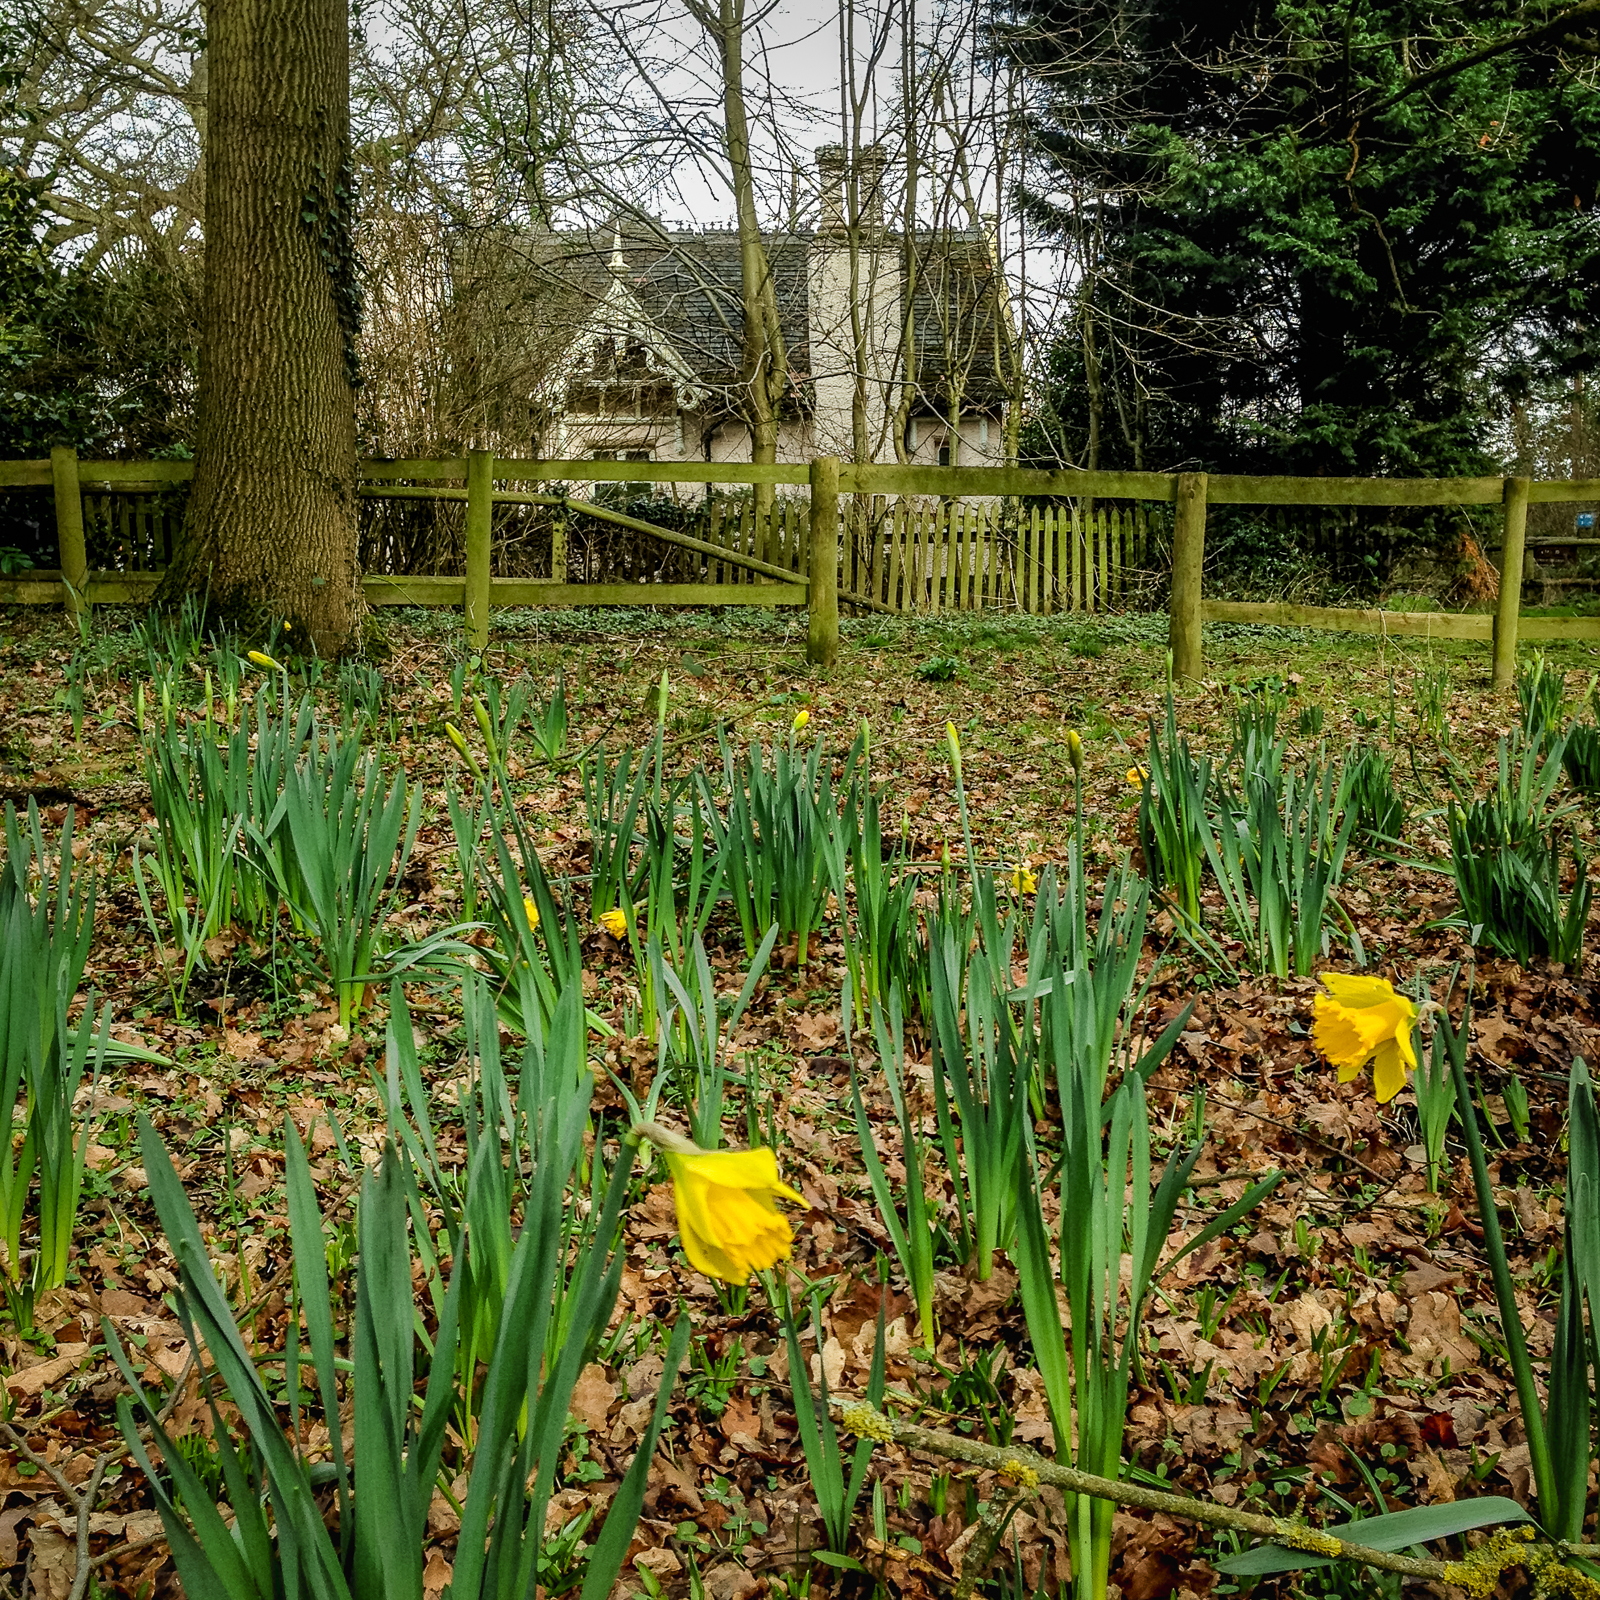 20170301_Enfield_Whitewebbs-Park_Little-House